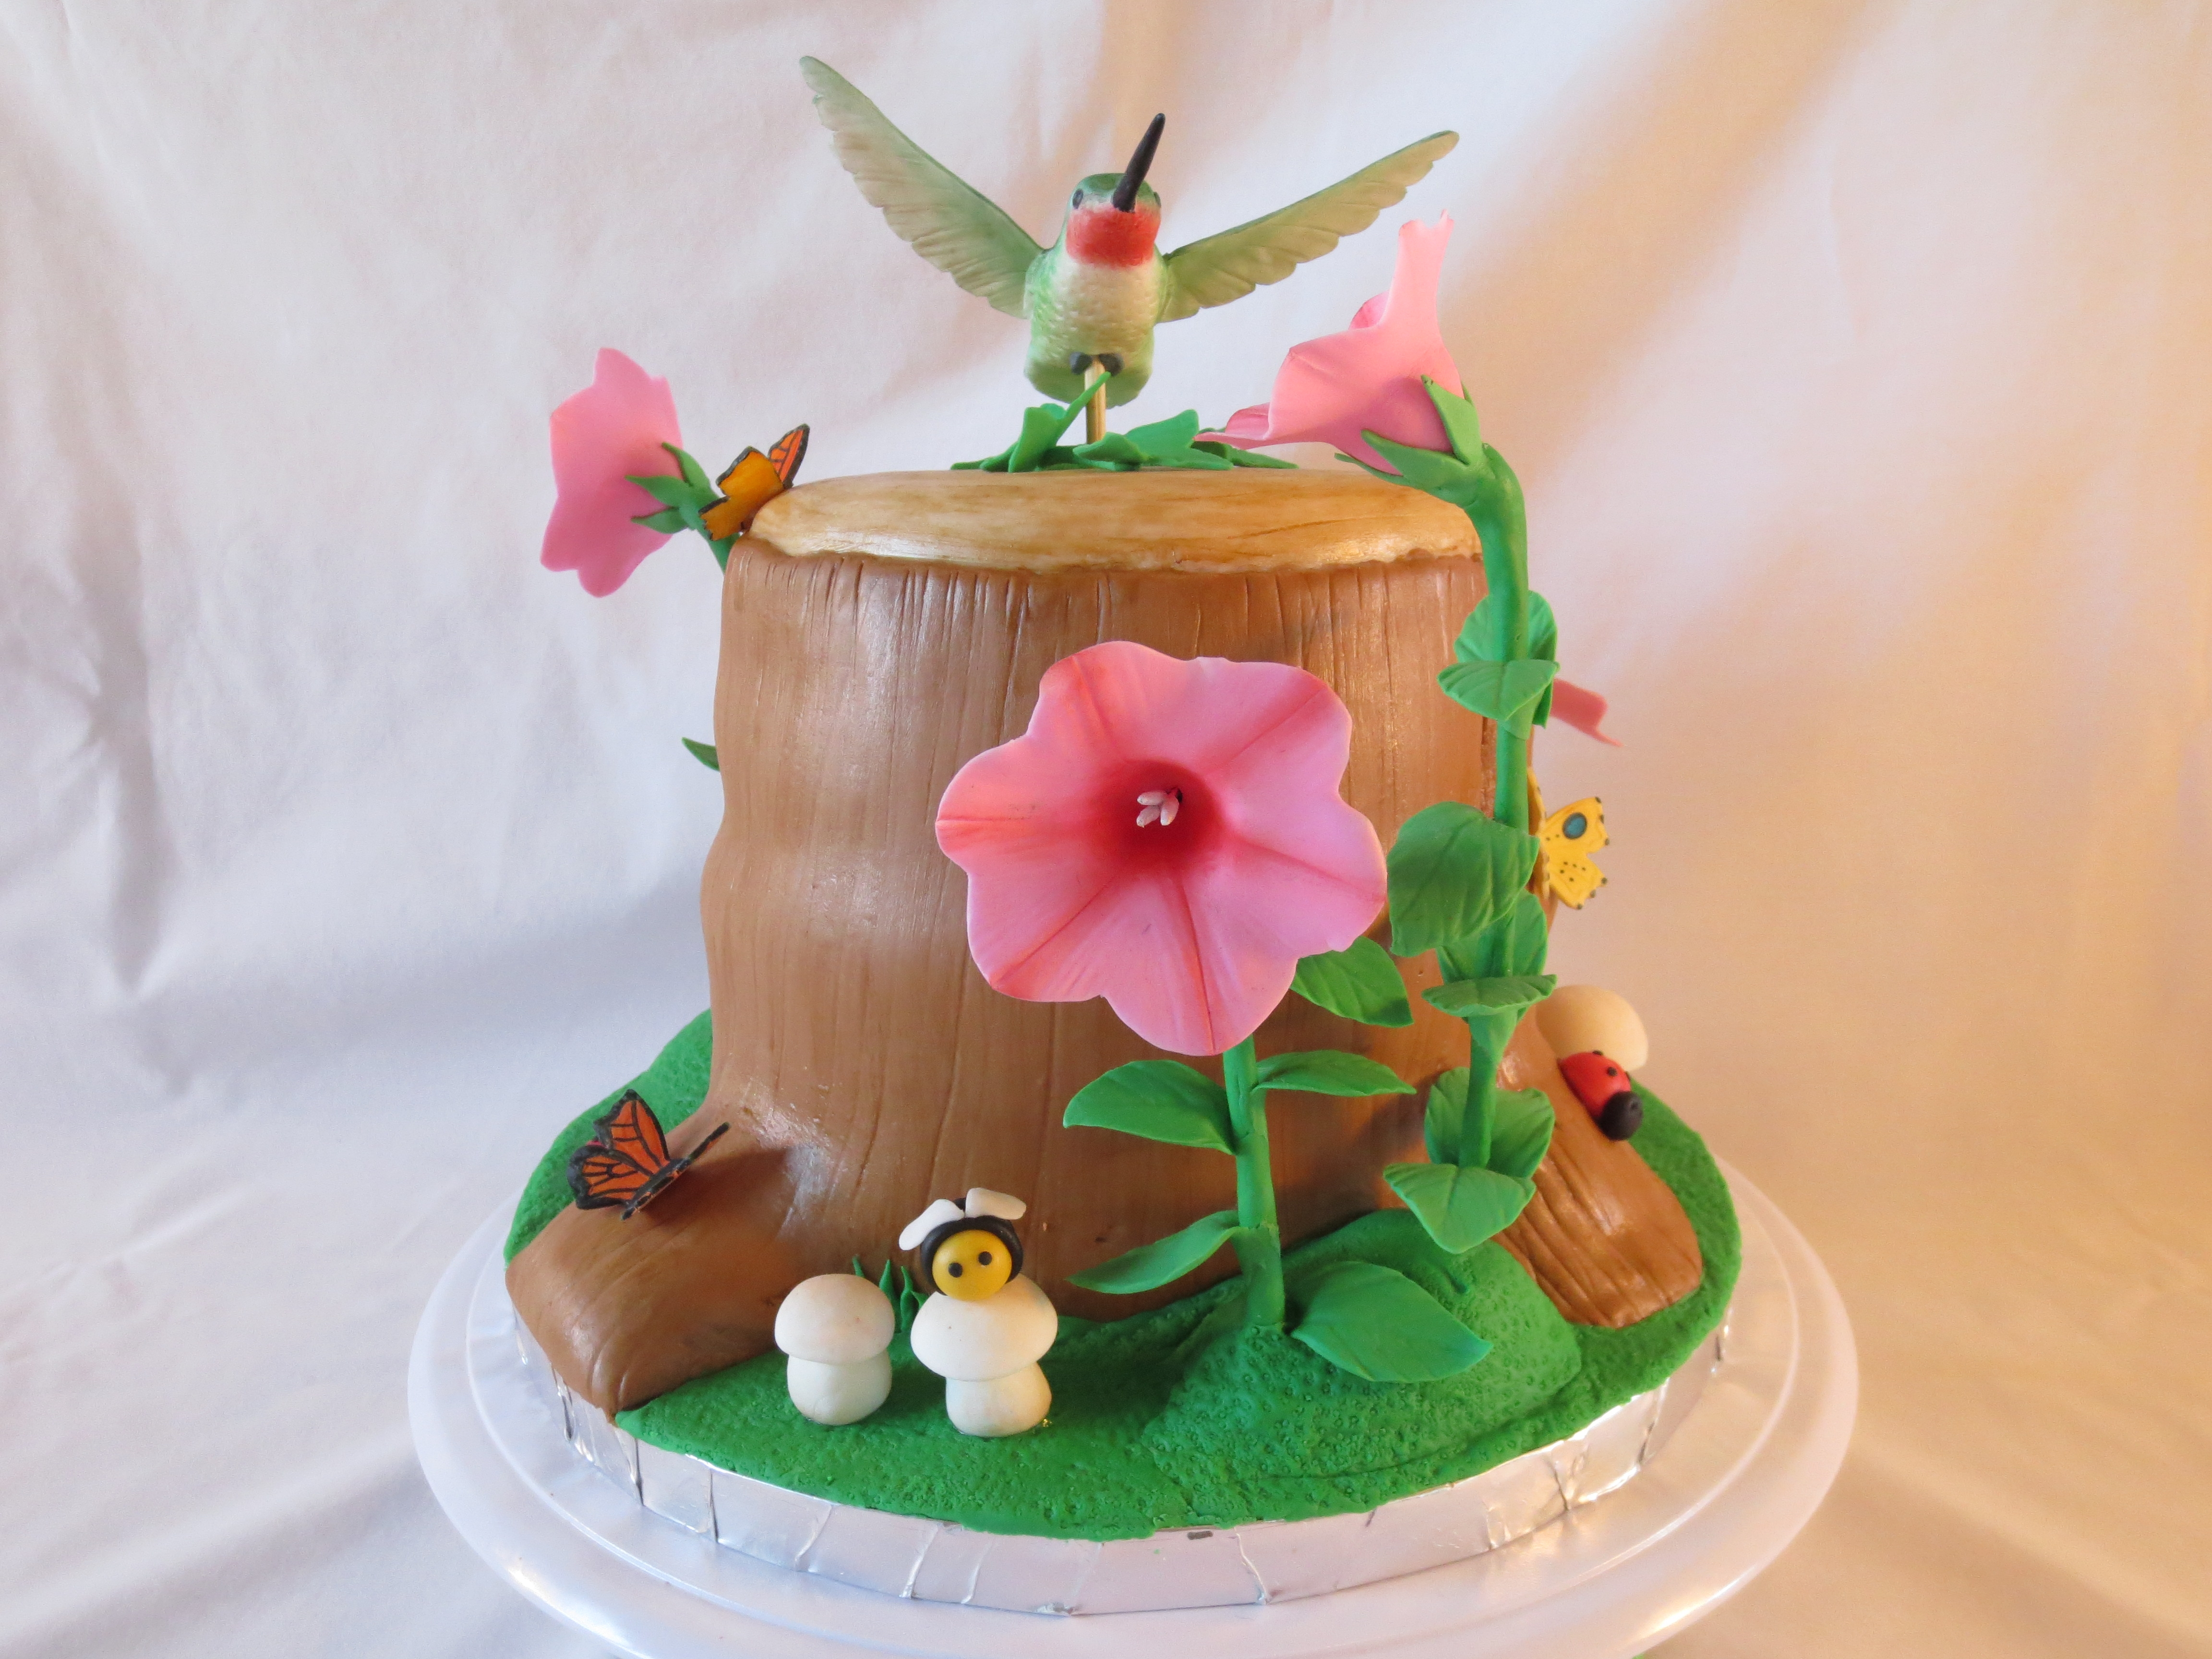 How To Get Cake Decorating Experience : A Hummingbird Cake For My Mother In Law Its German ...